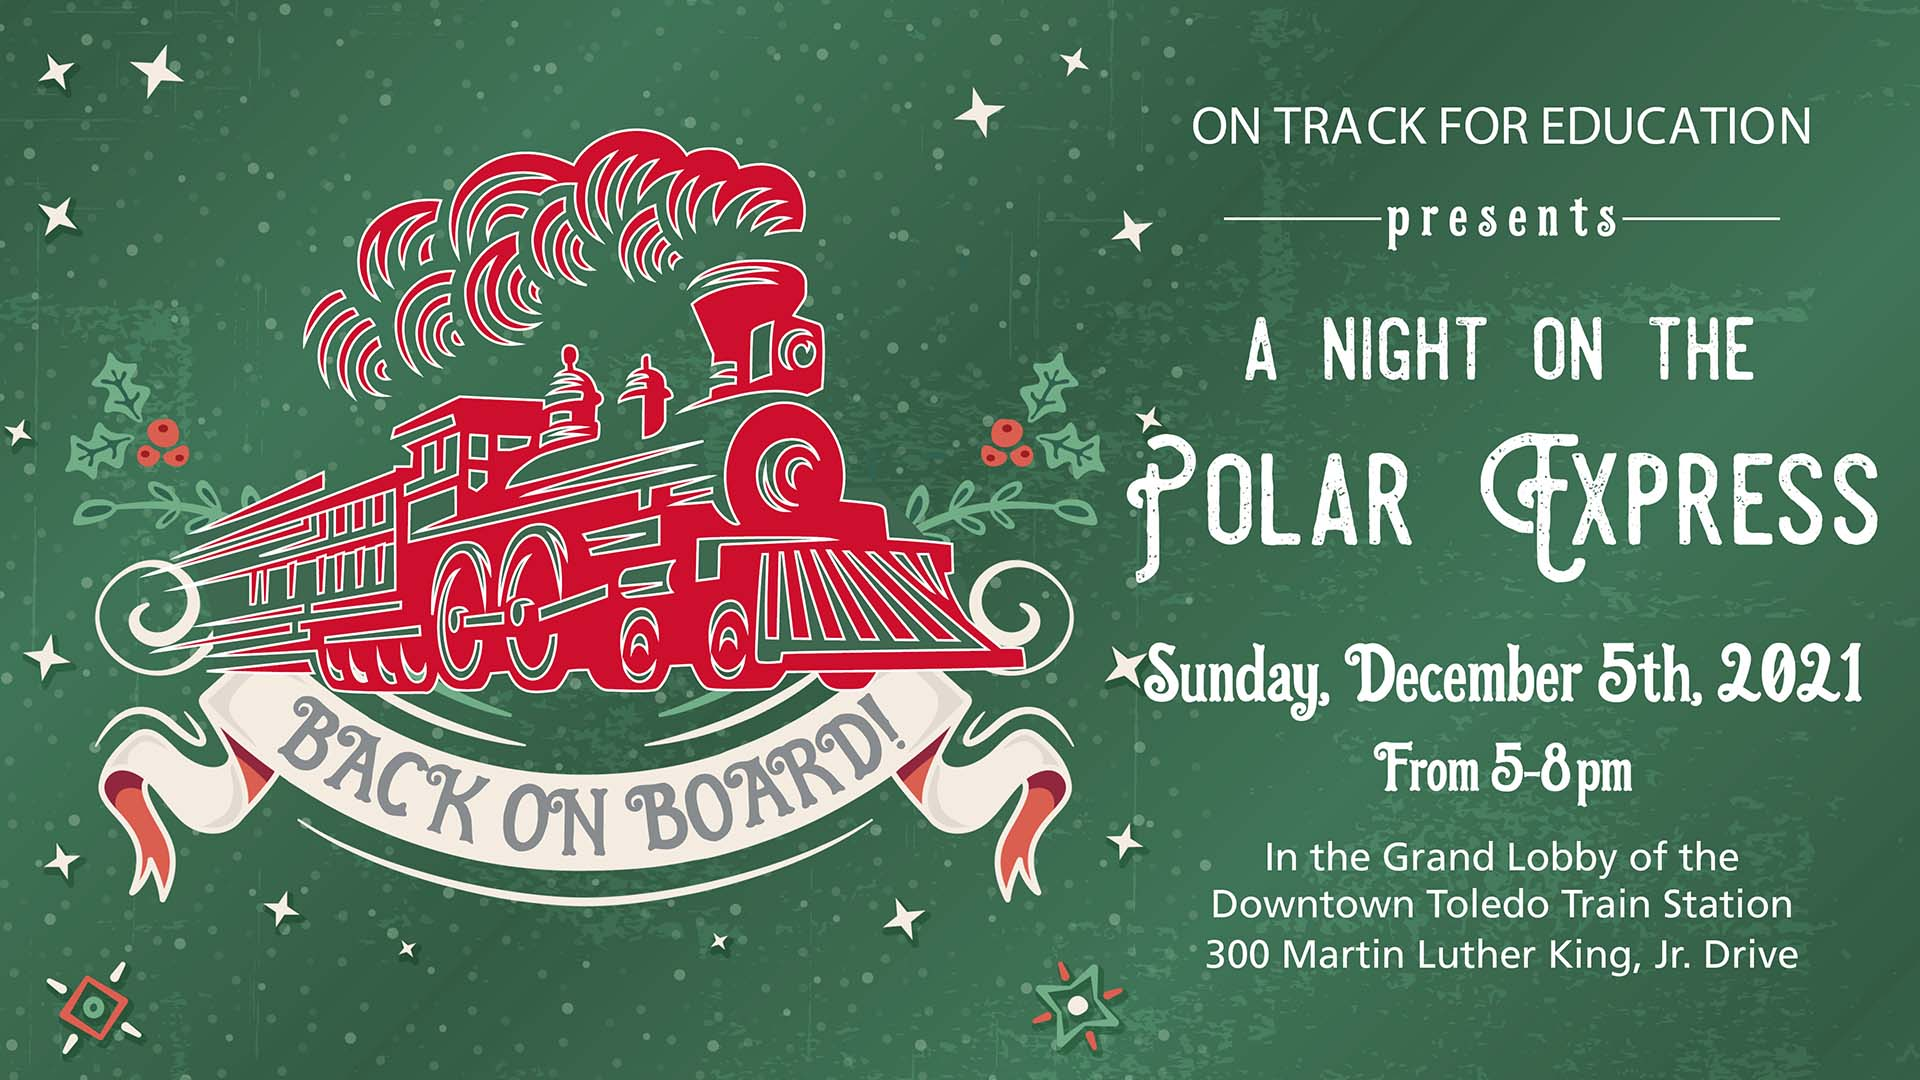 A night on the Polar Express 2021 banner